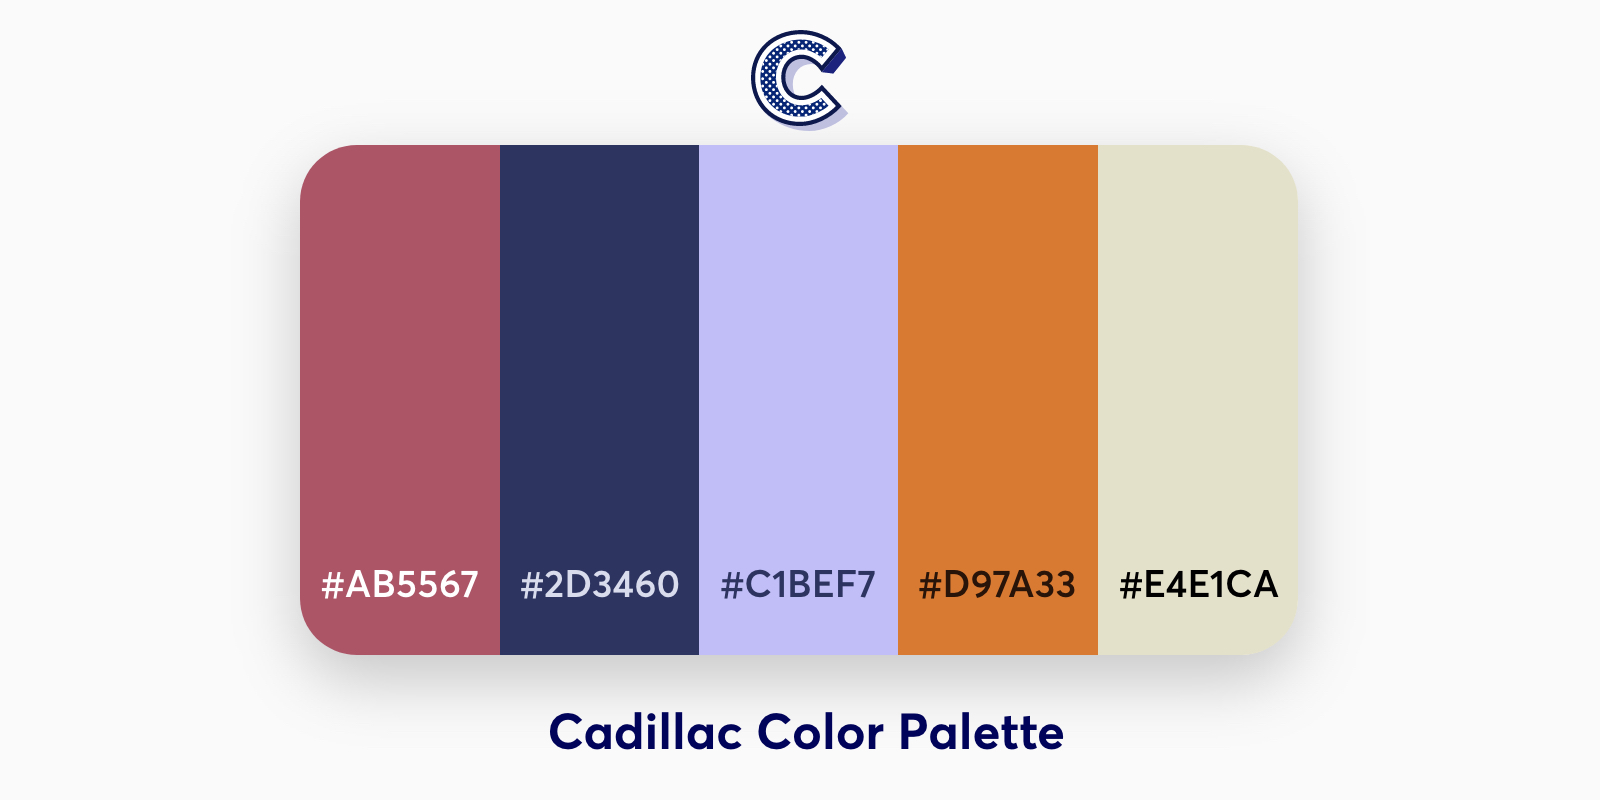 the featured image of cadillac color palette